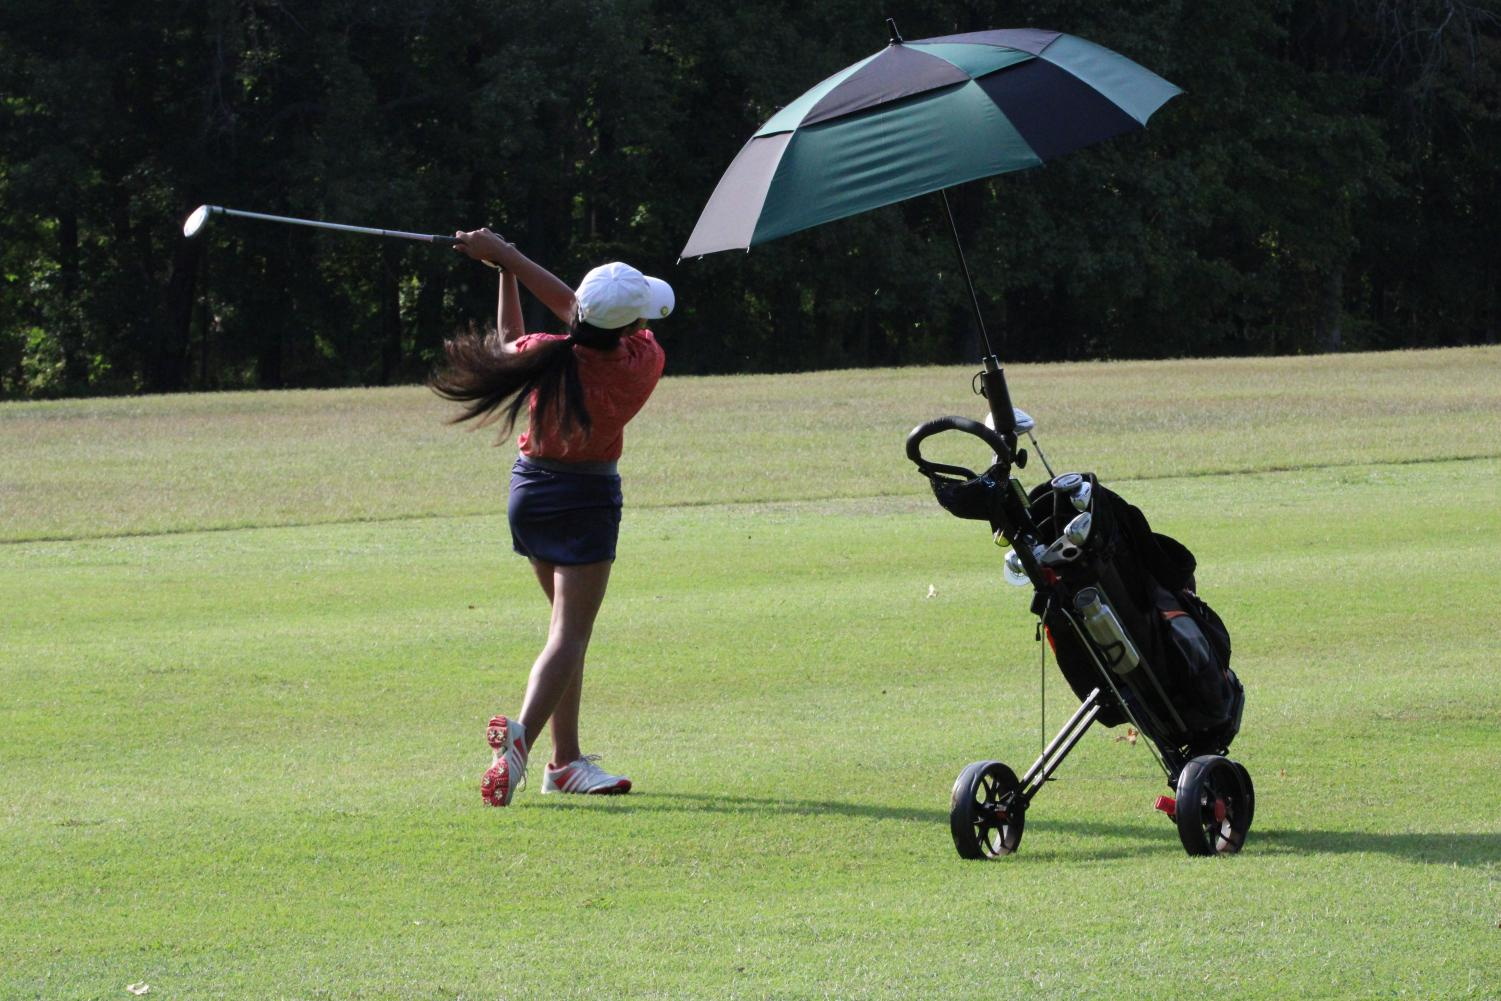 Senior Khushi Chawla swings her golf club, sending her ball flying on the green. To prepare for regionals, Chawla practiced twice on the course where regionals would be held (Laurel Hill Golf Club).